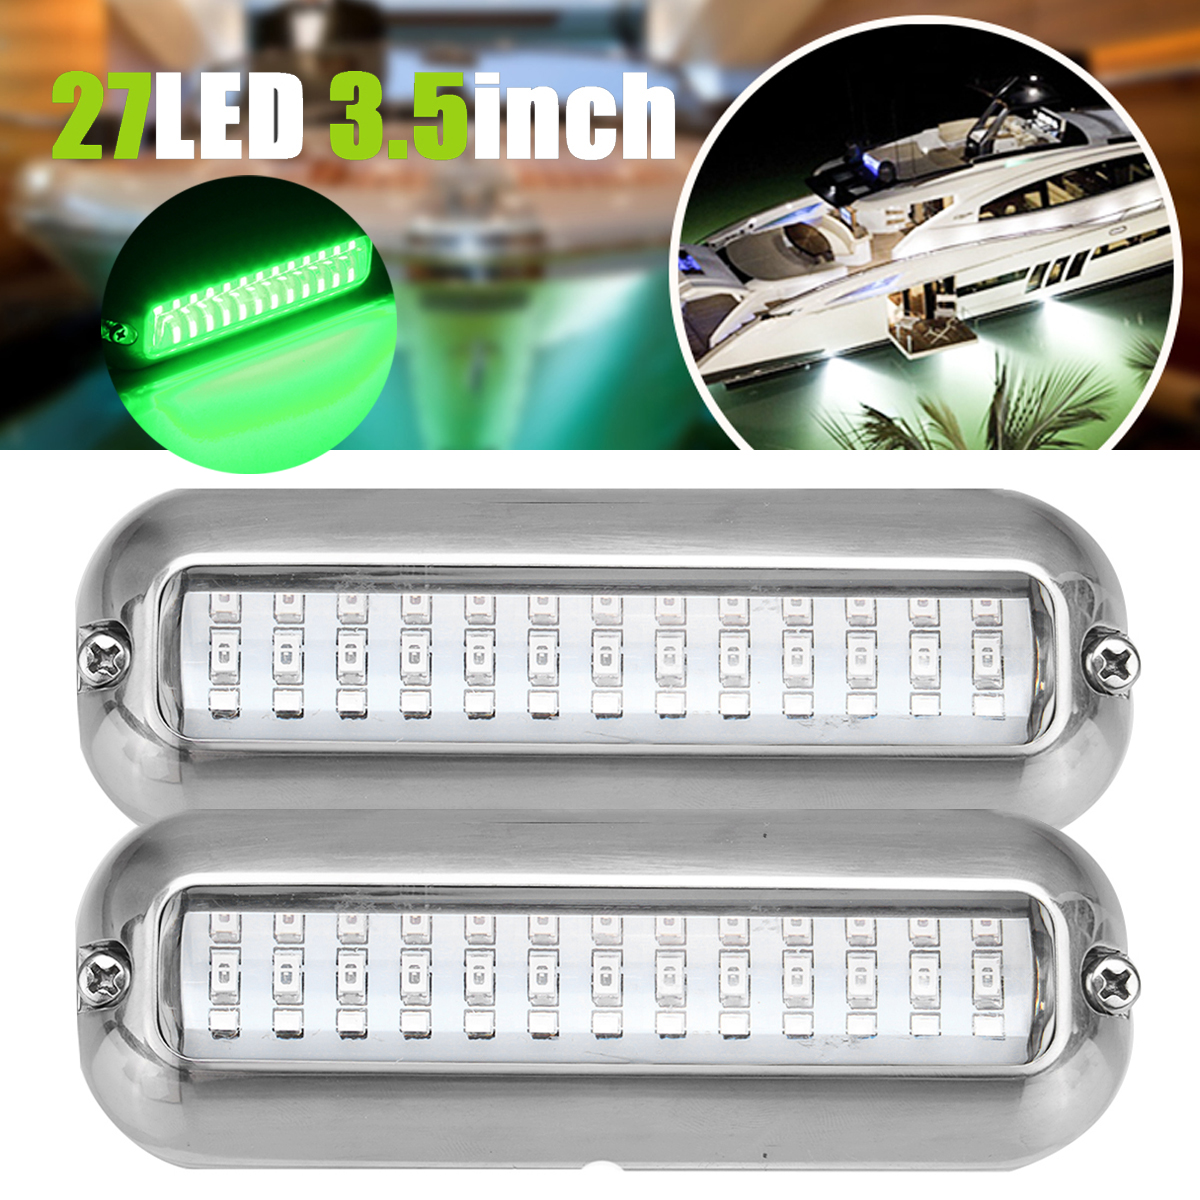 Led Underwater Lights Objective 2pcs Green Led Underwater Fishing Light Fishing Boat Light Attracting Fish Night Luring Lamps For Boats Docks Fishing Tools